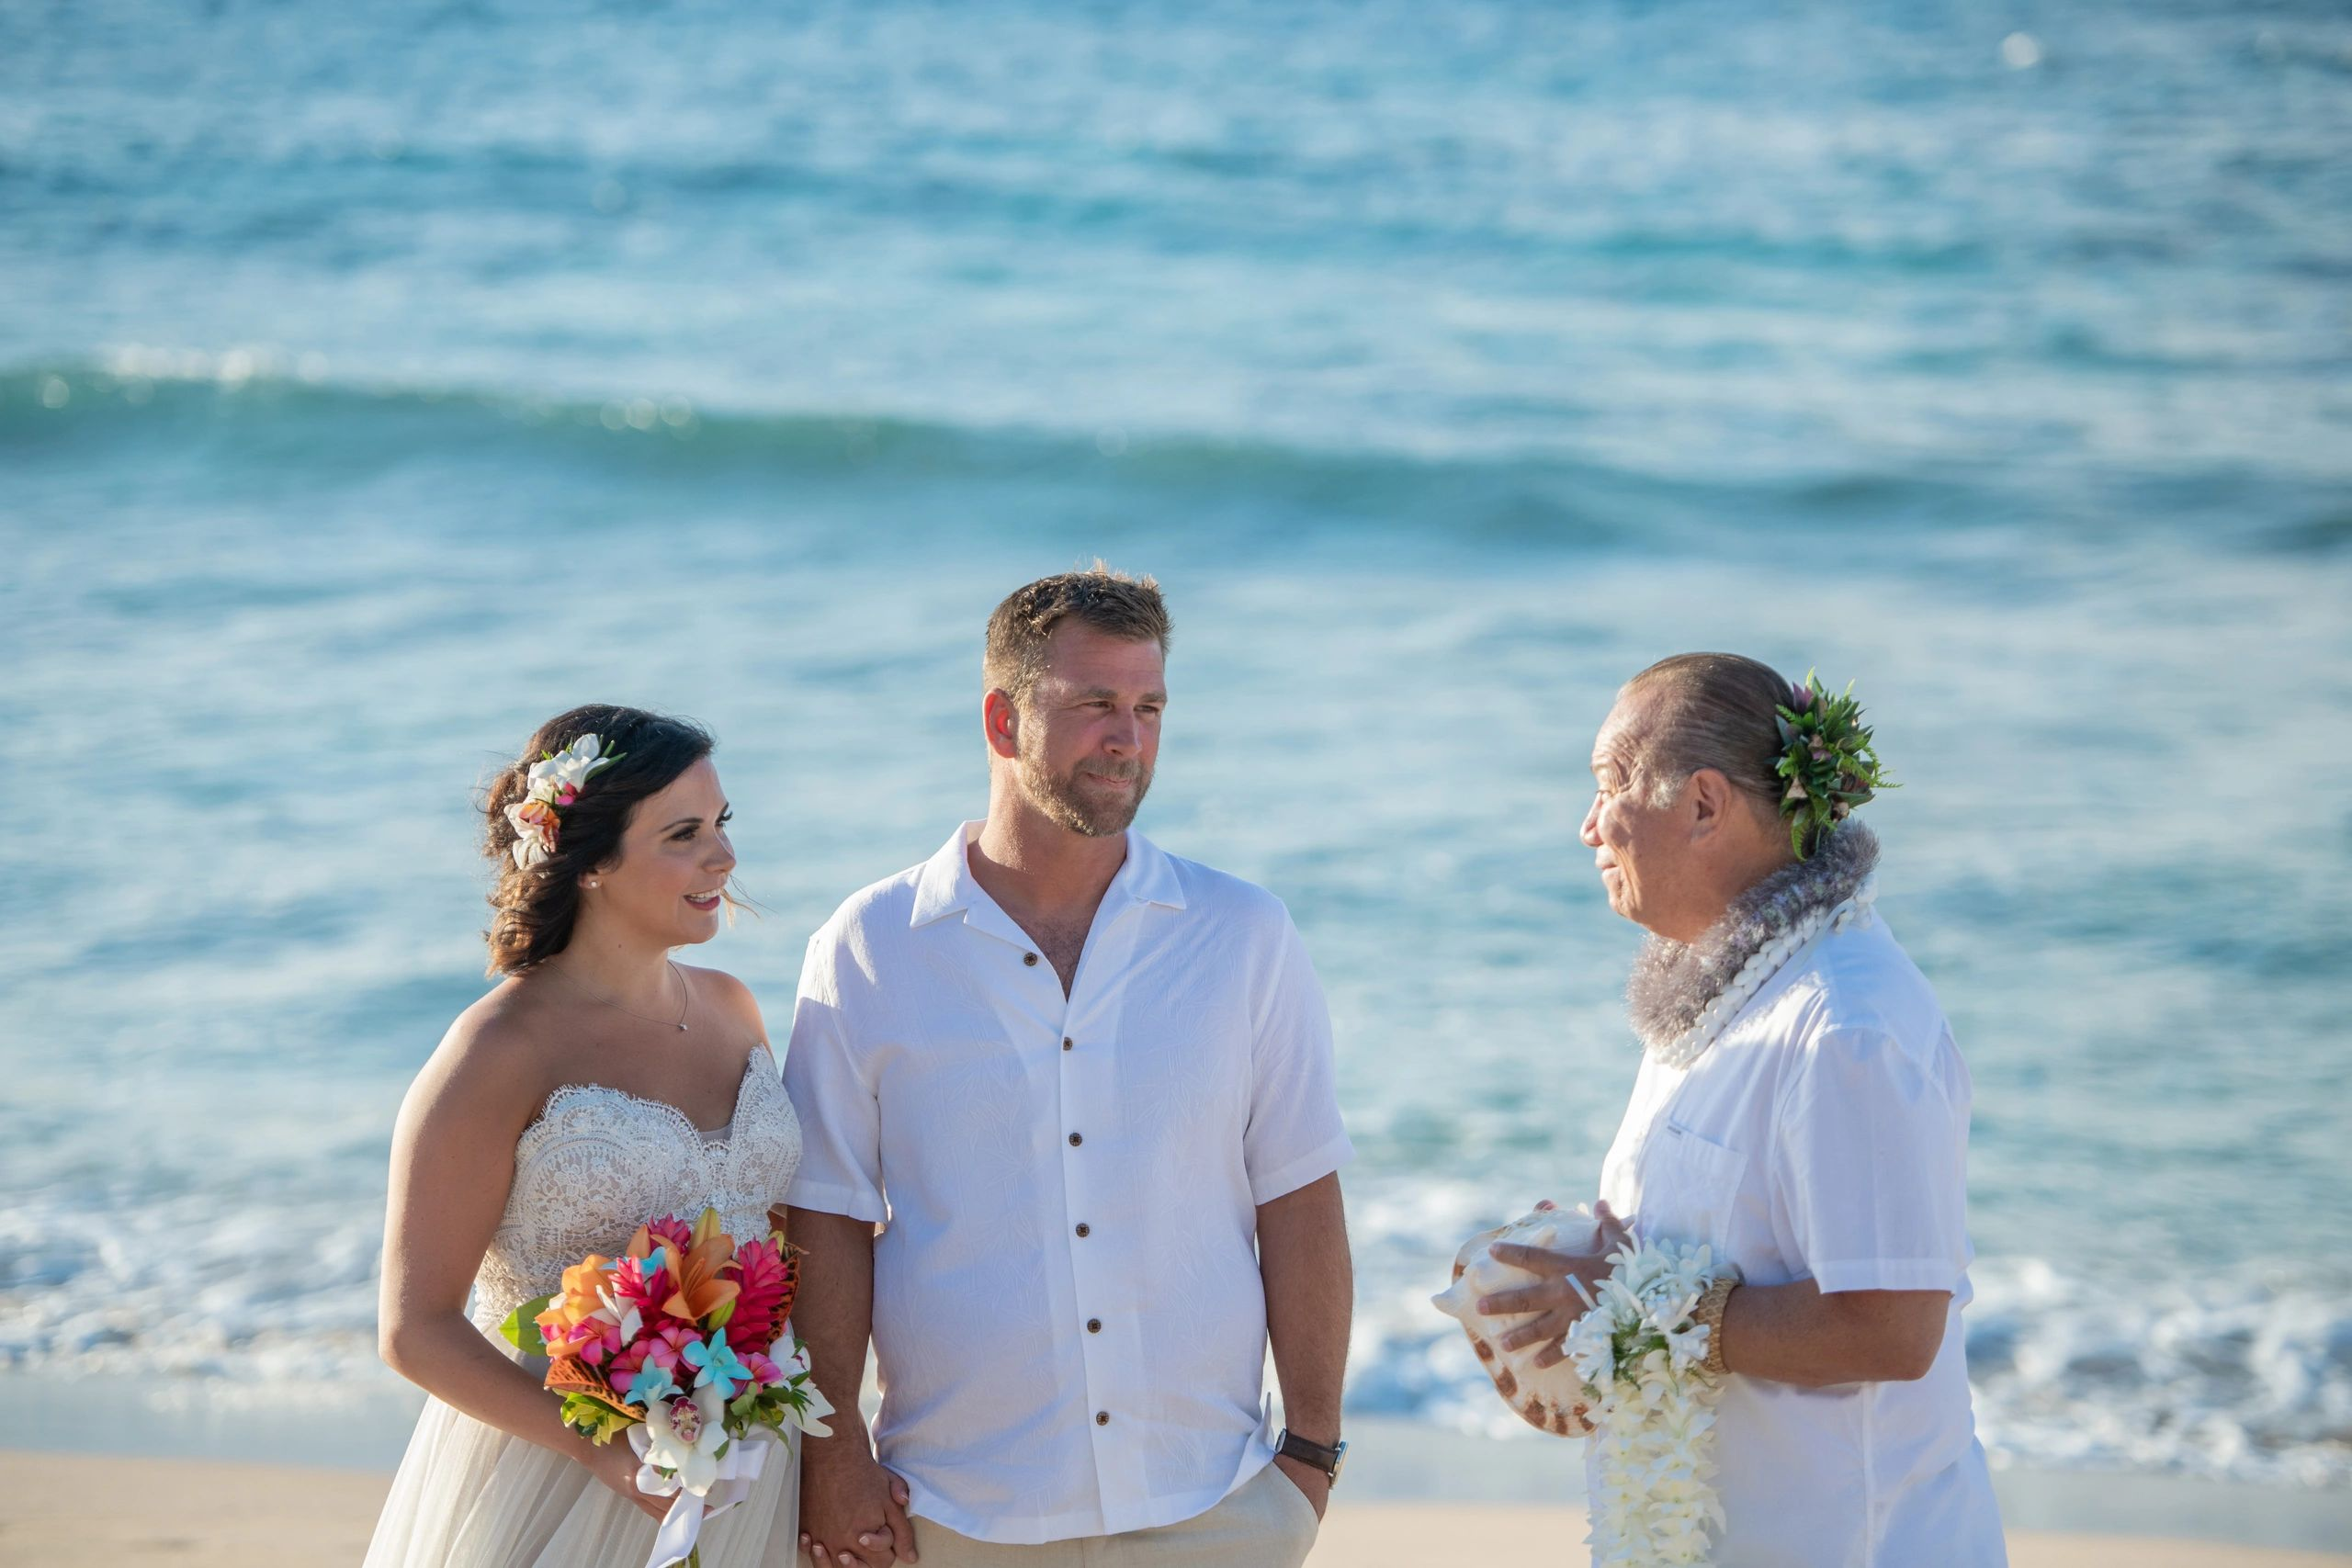 Maui Hawaii Weddings Maui beach wedding Eloped Better together Just Maui'd